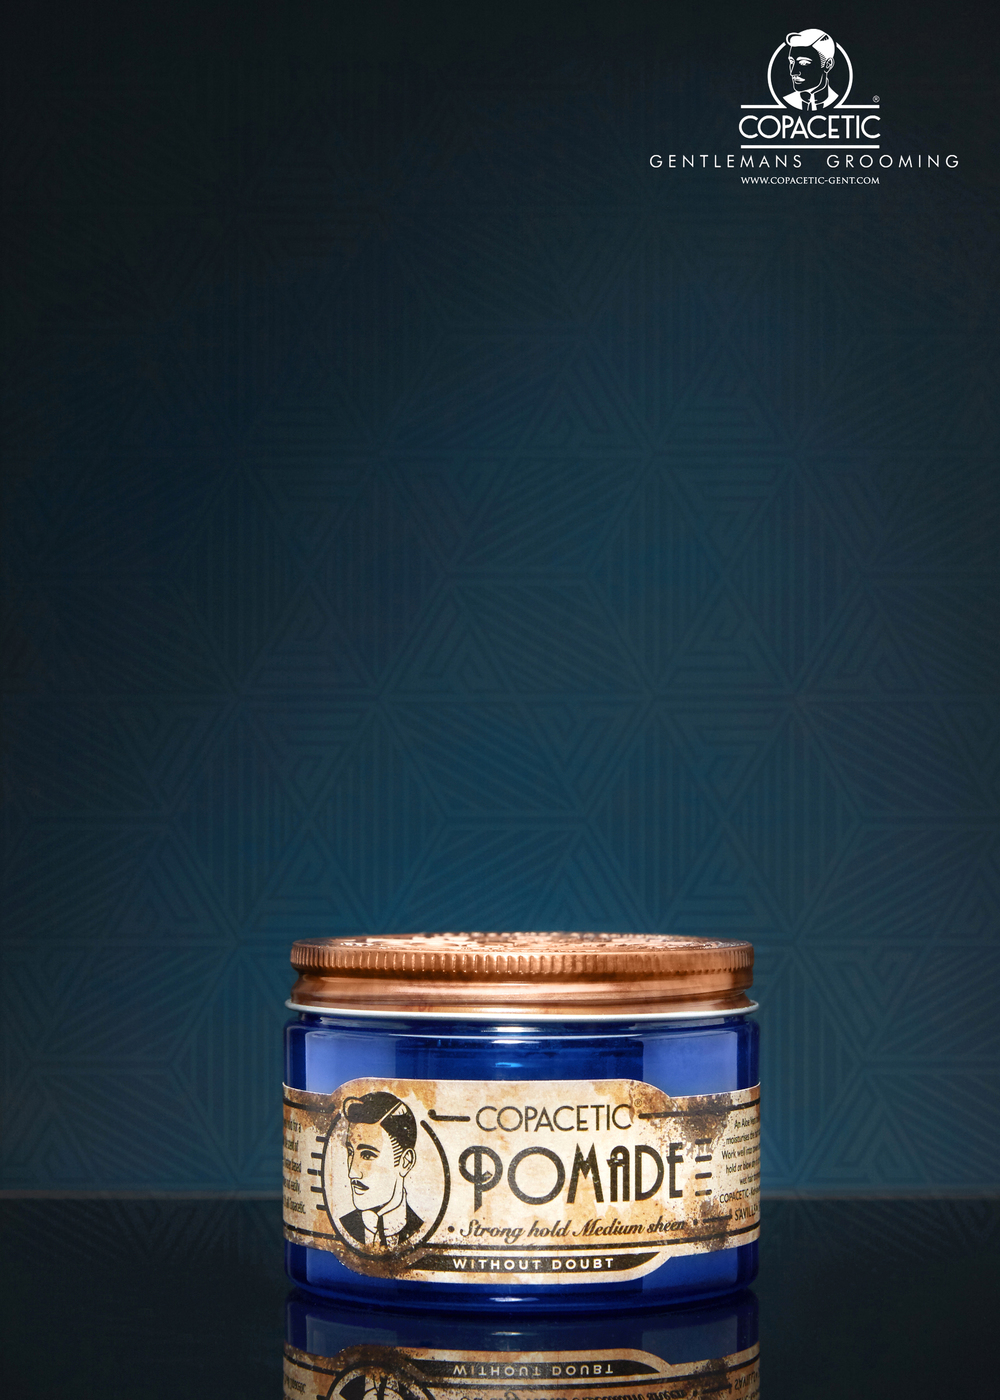 Copacetic-Product-Pomade-1.jpg